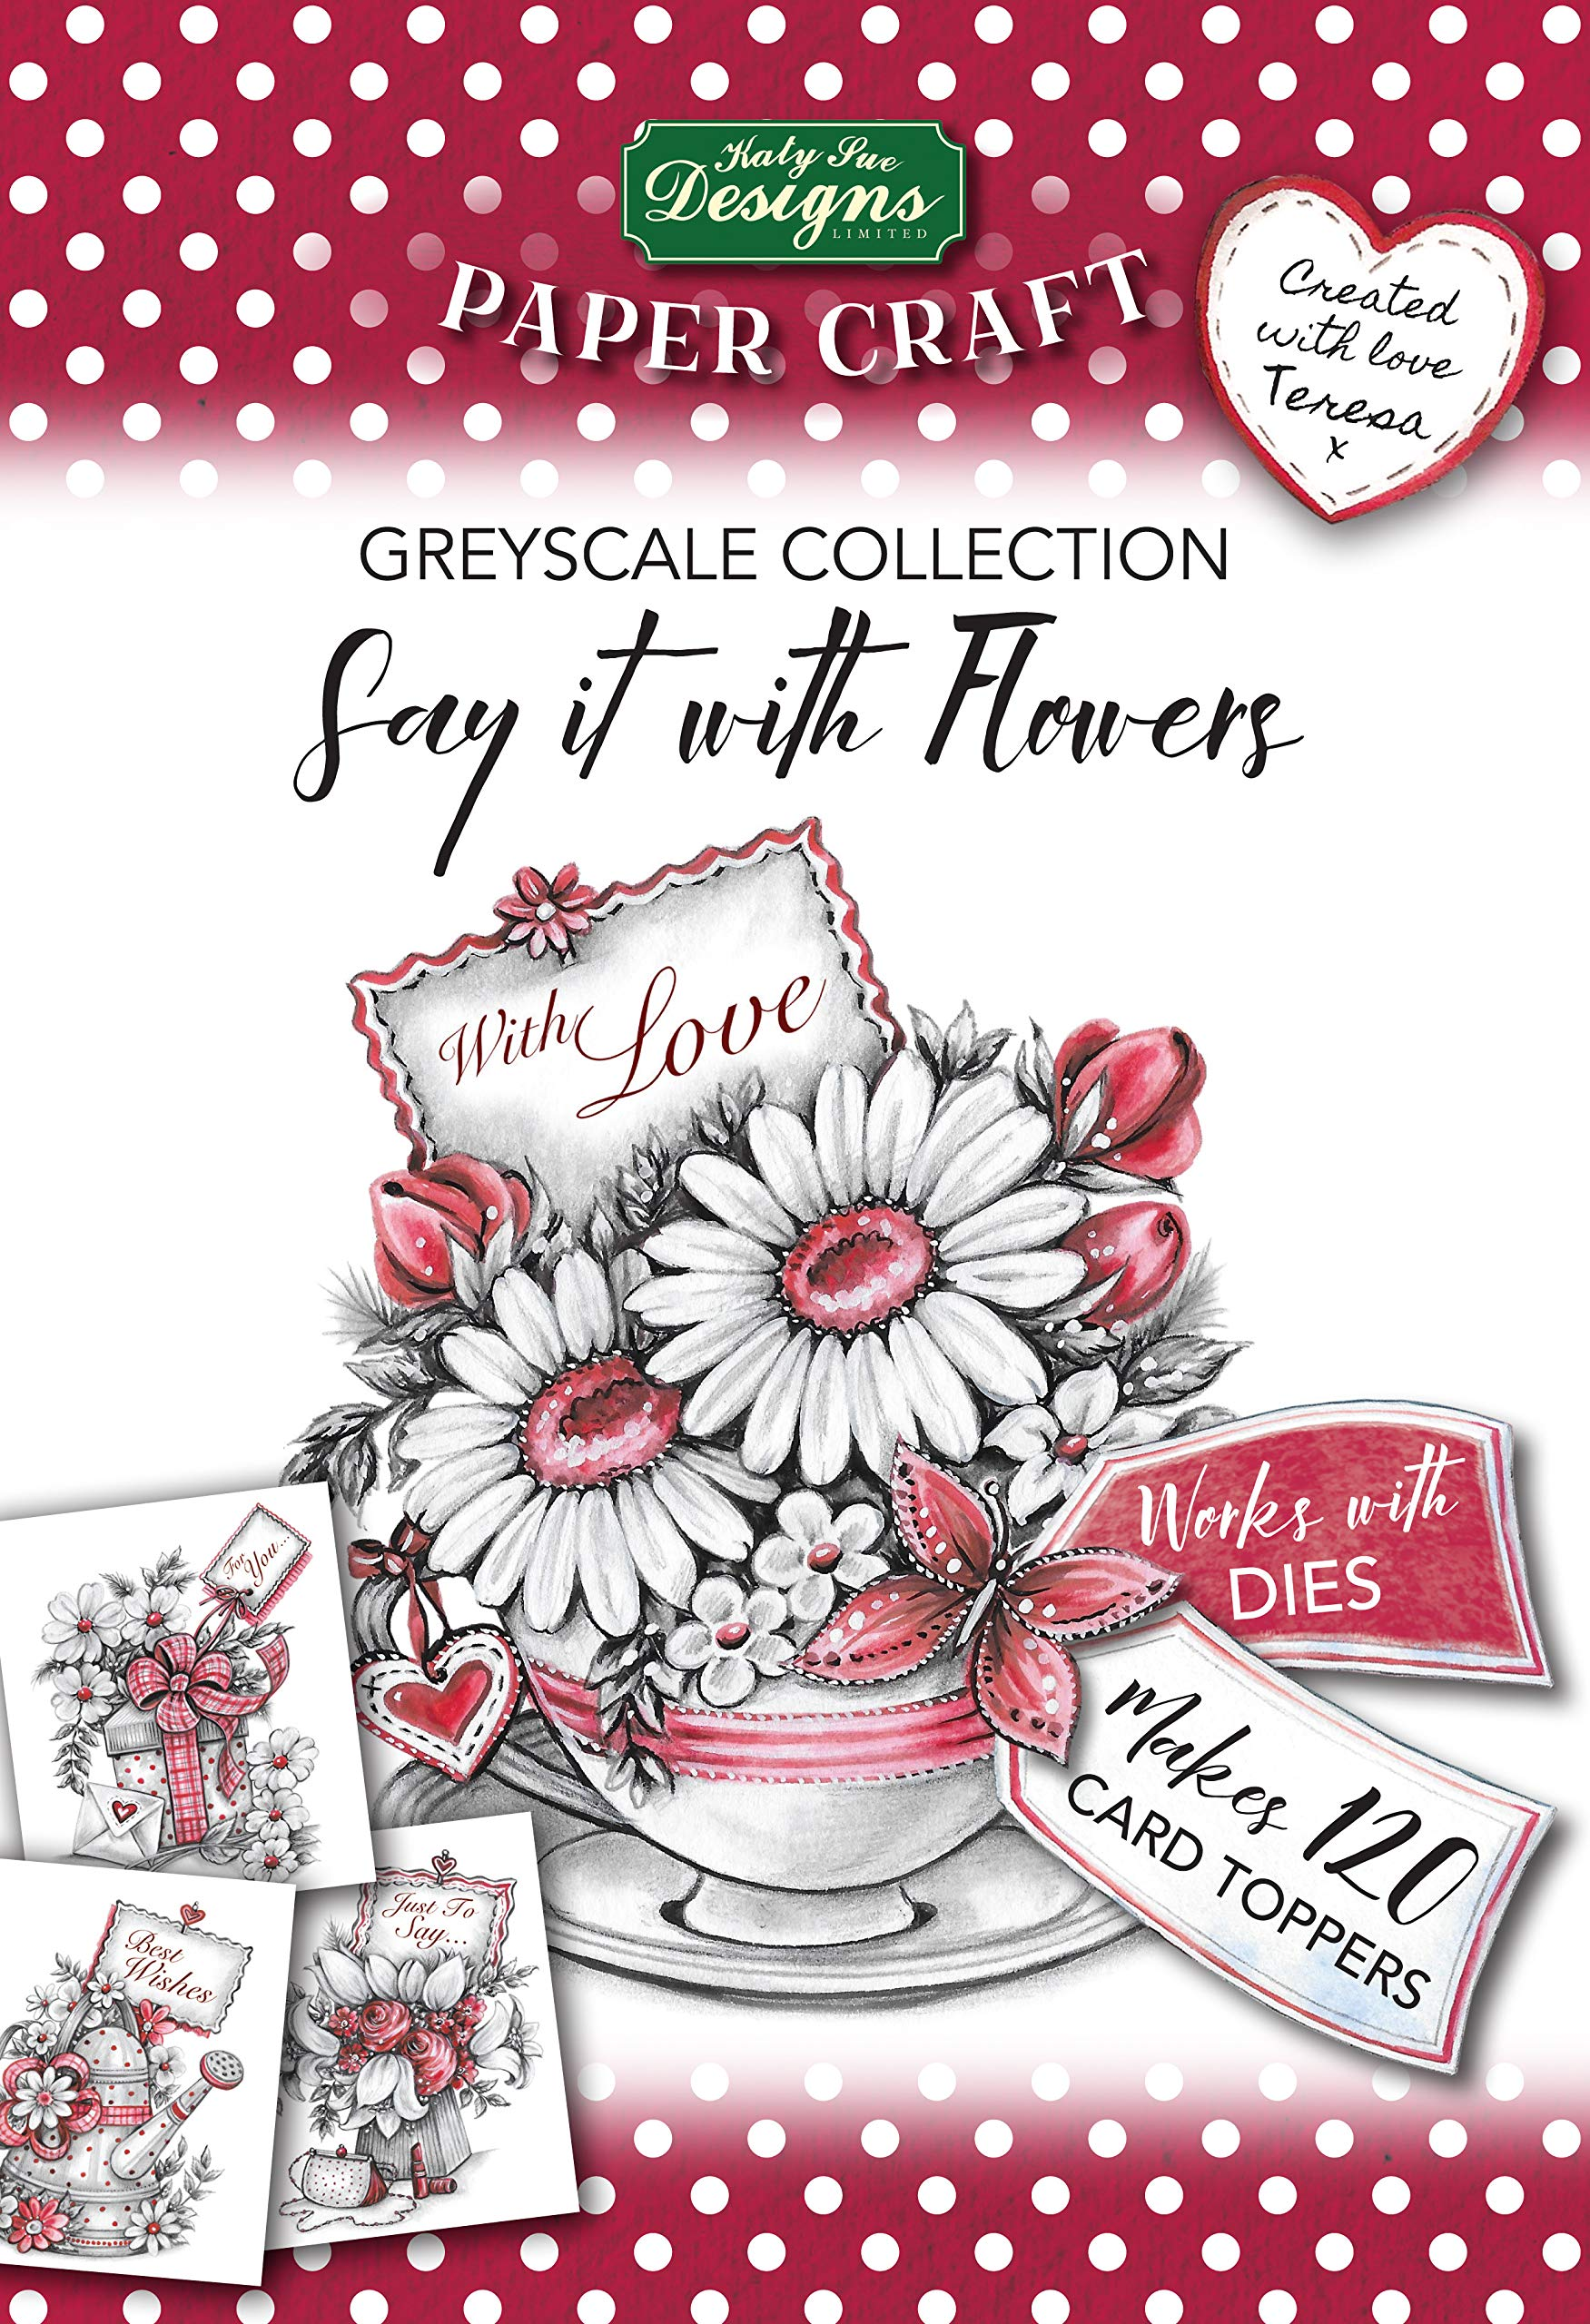 Say it with Flowers Greyscale Collection Paper Pad, Paper Craft Pads, Card Making Kit, Makes 120 Card Toppers, Works with Dies by Katy Sue (Image #1)